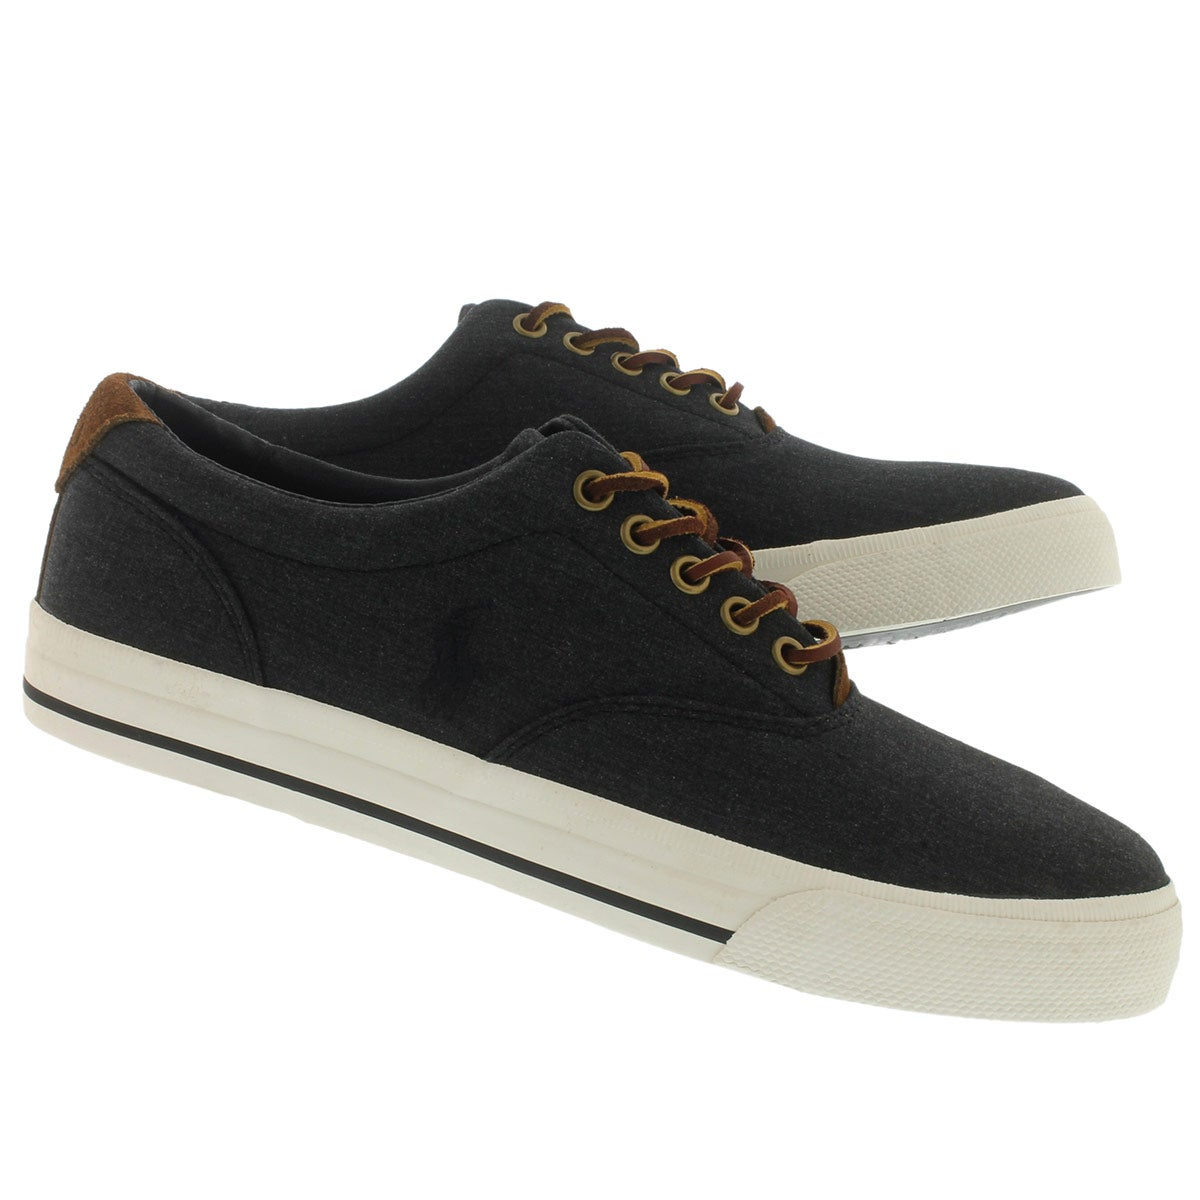 Mns Vaughn blk heather ripstop sneaker